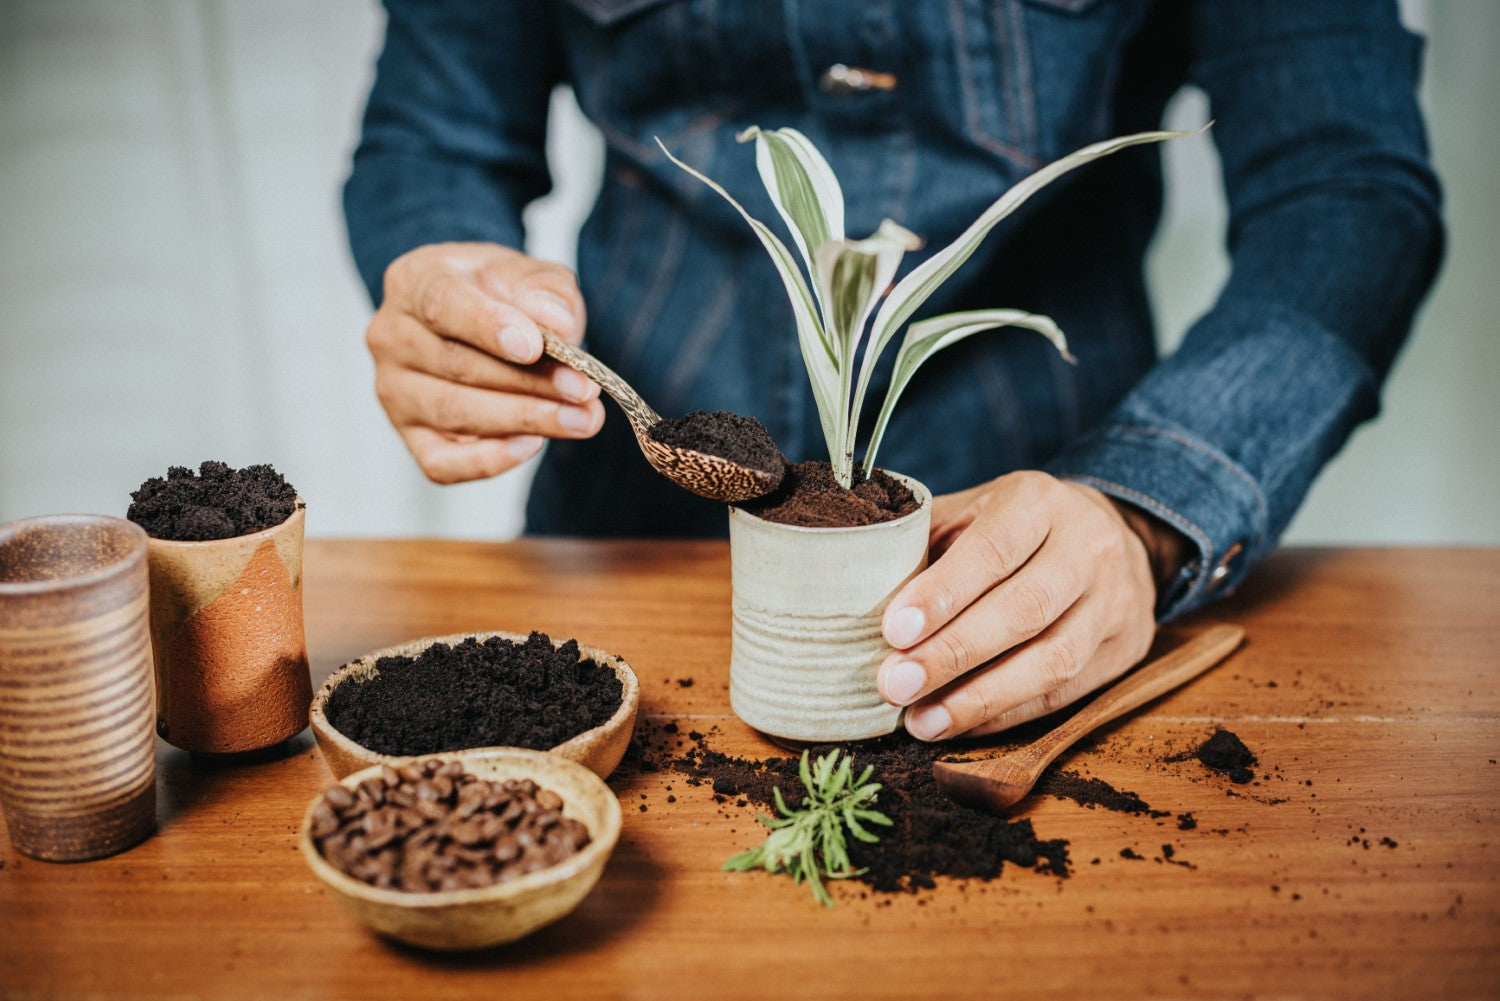 putting coffee grind in plants